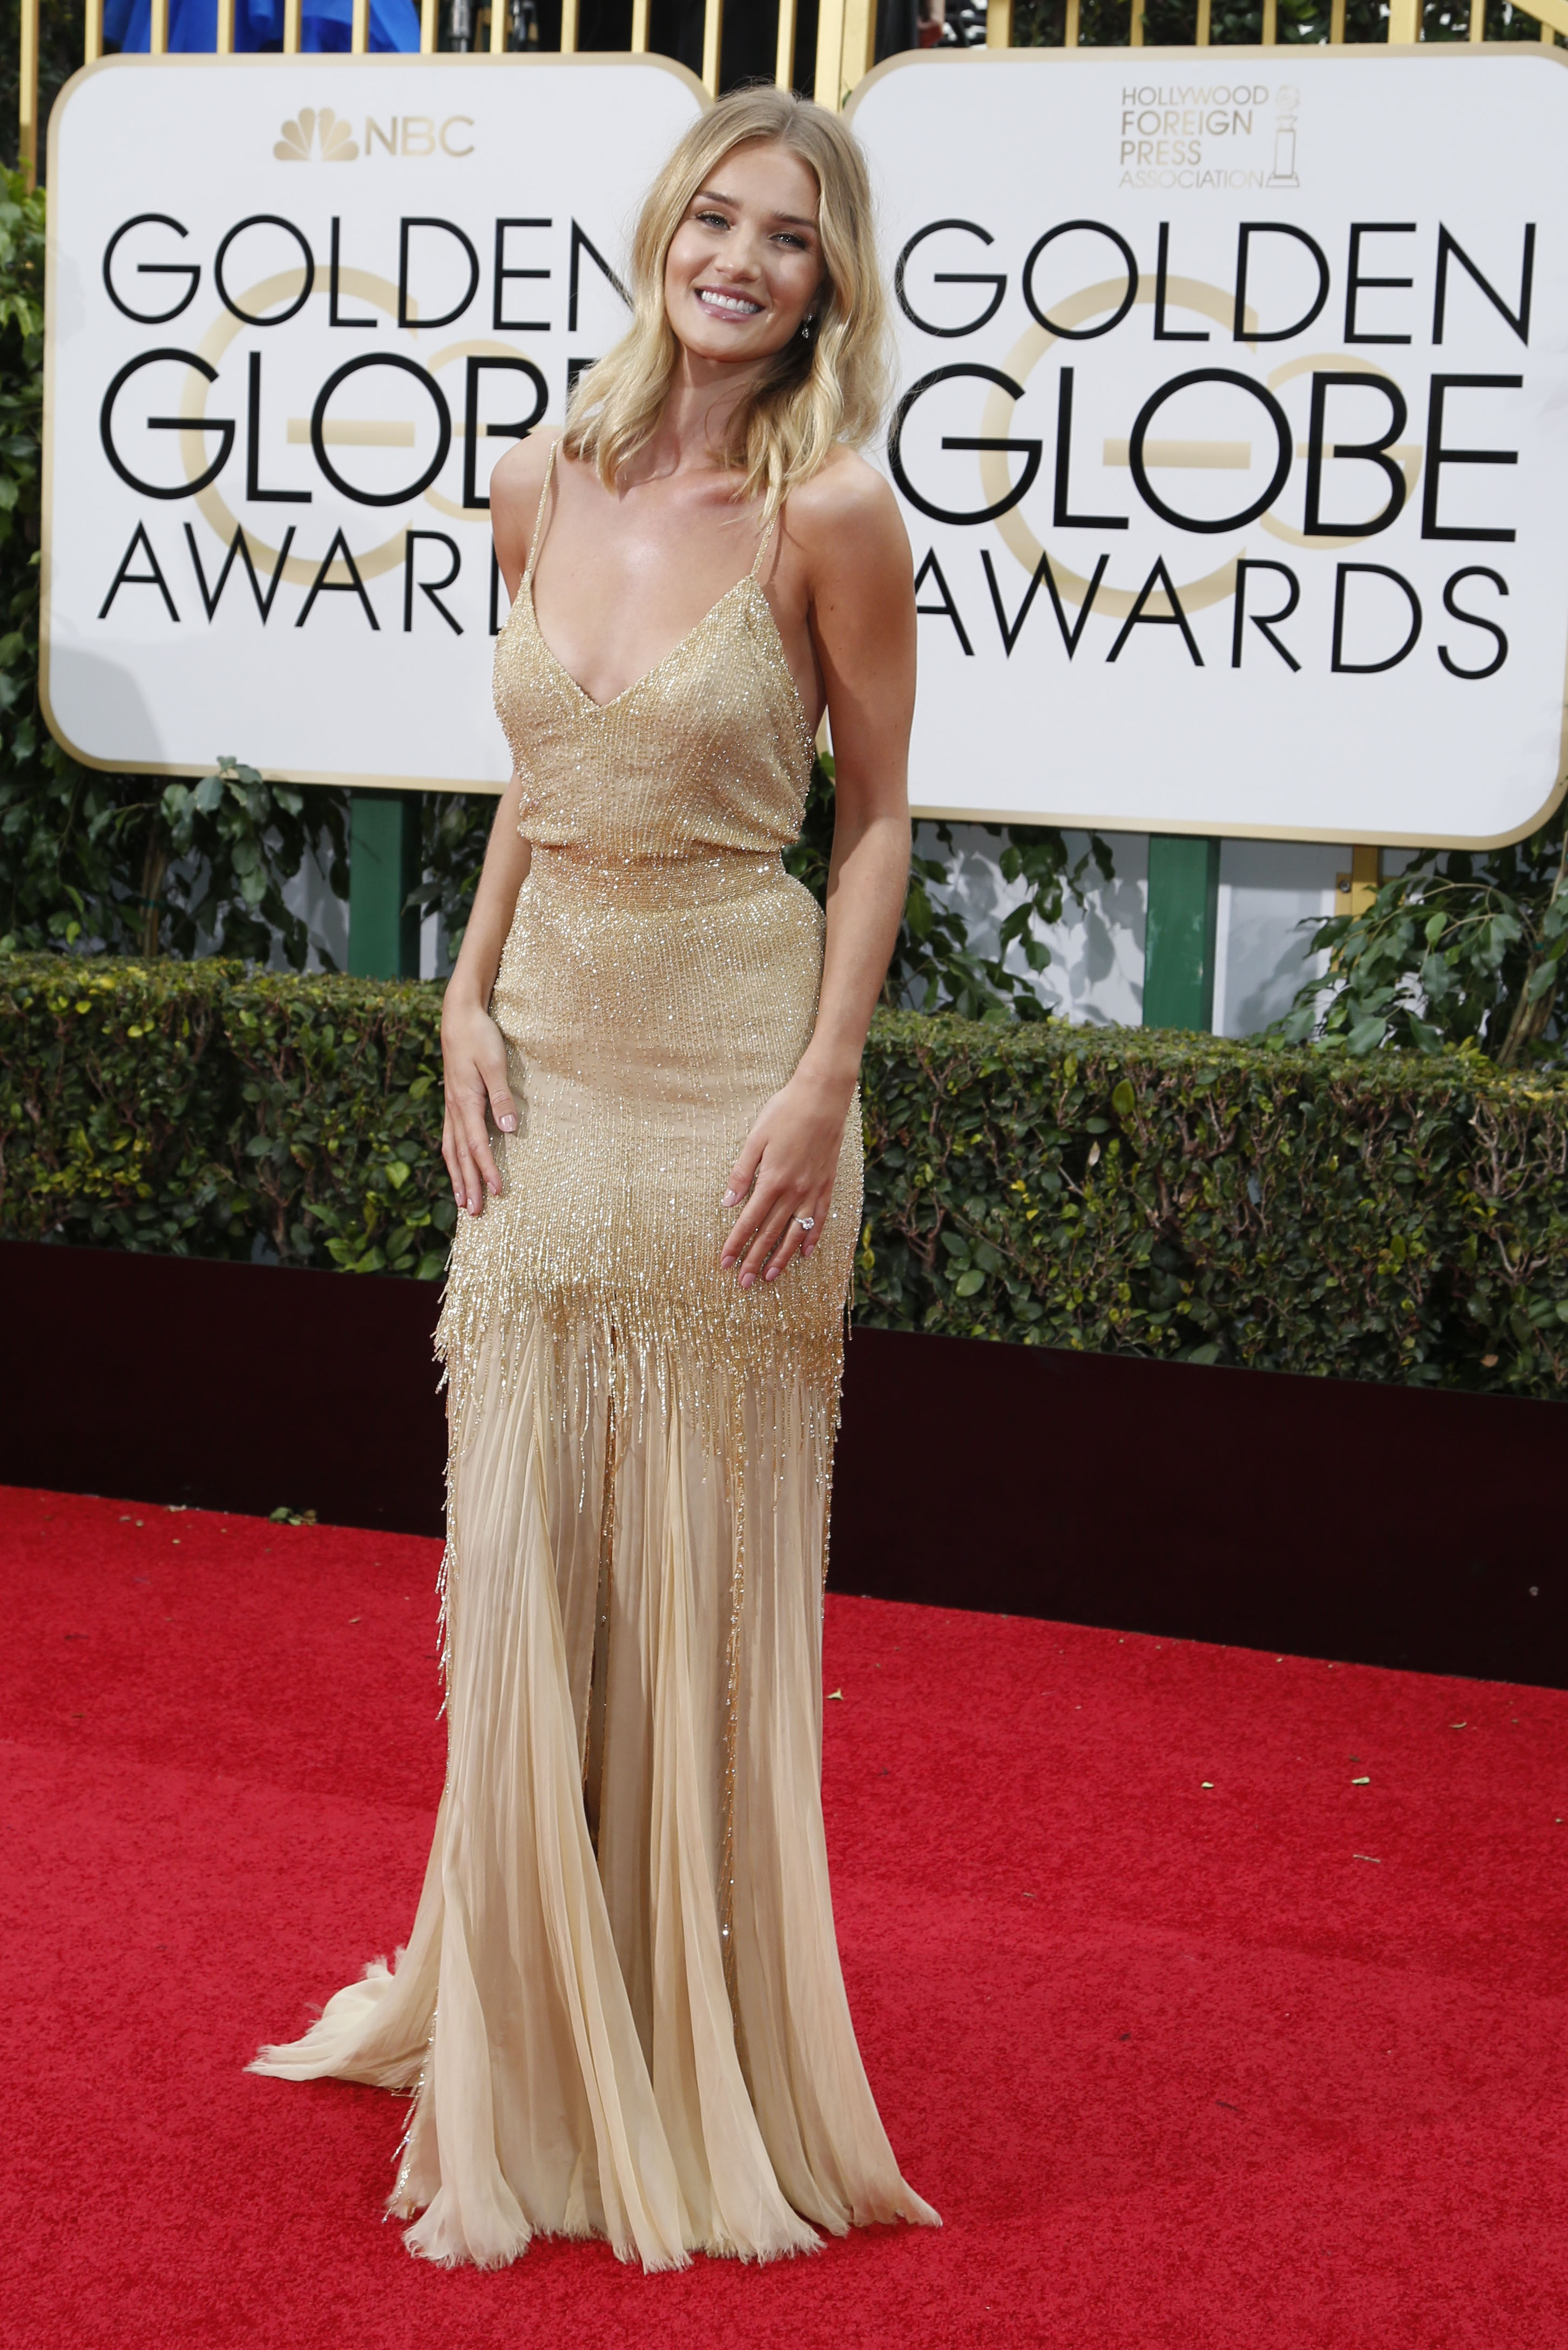 Mandatory Credit: Photo by Action Press/REX/Shutterstock (5528384an) Rosie Huntington-Whiteley 73rd Annual Golden Globe Awards, Arrivals, Los Angeles, America - 10 Jan 2016